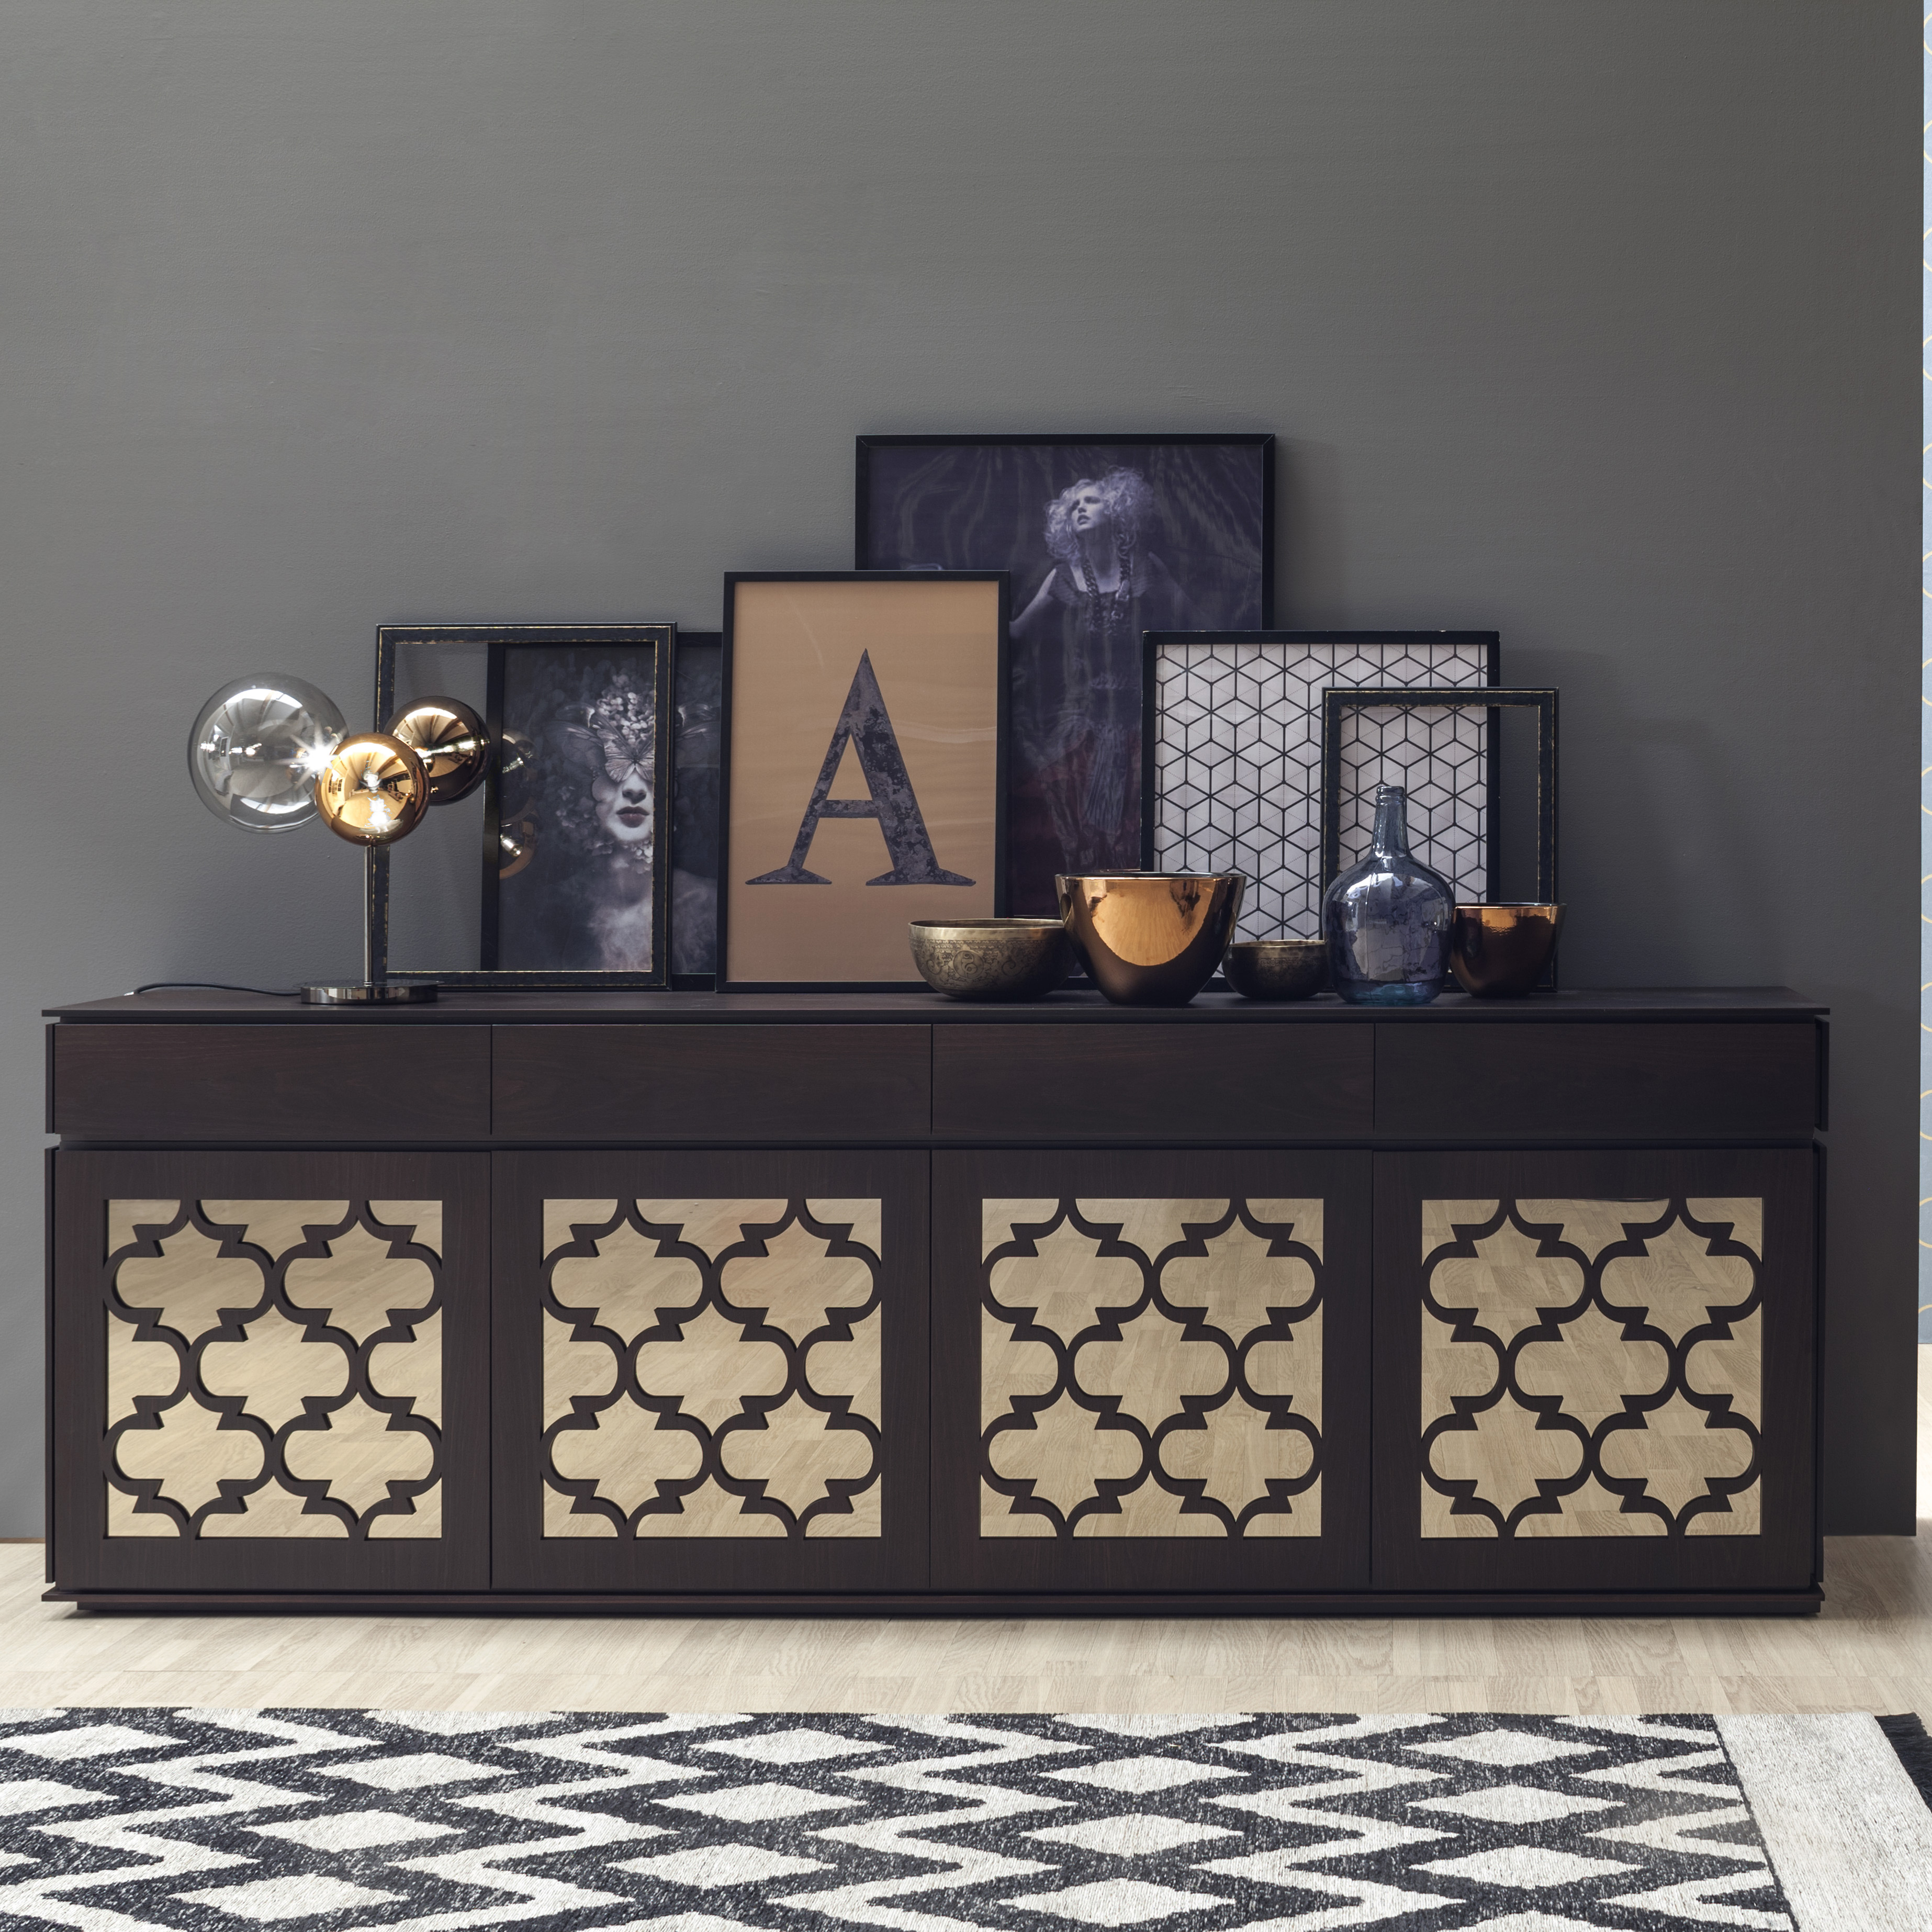 design sideboard marrakesh von tonin casa die wohn galerie. Black Bedroom Furniture Sets. Home Design Ideas